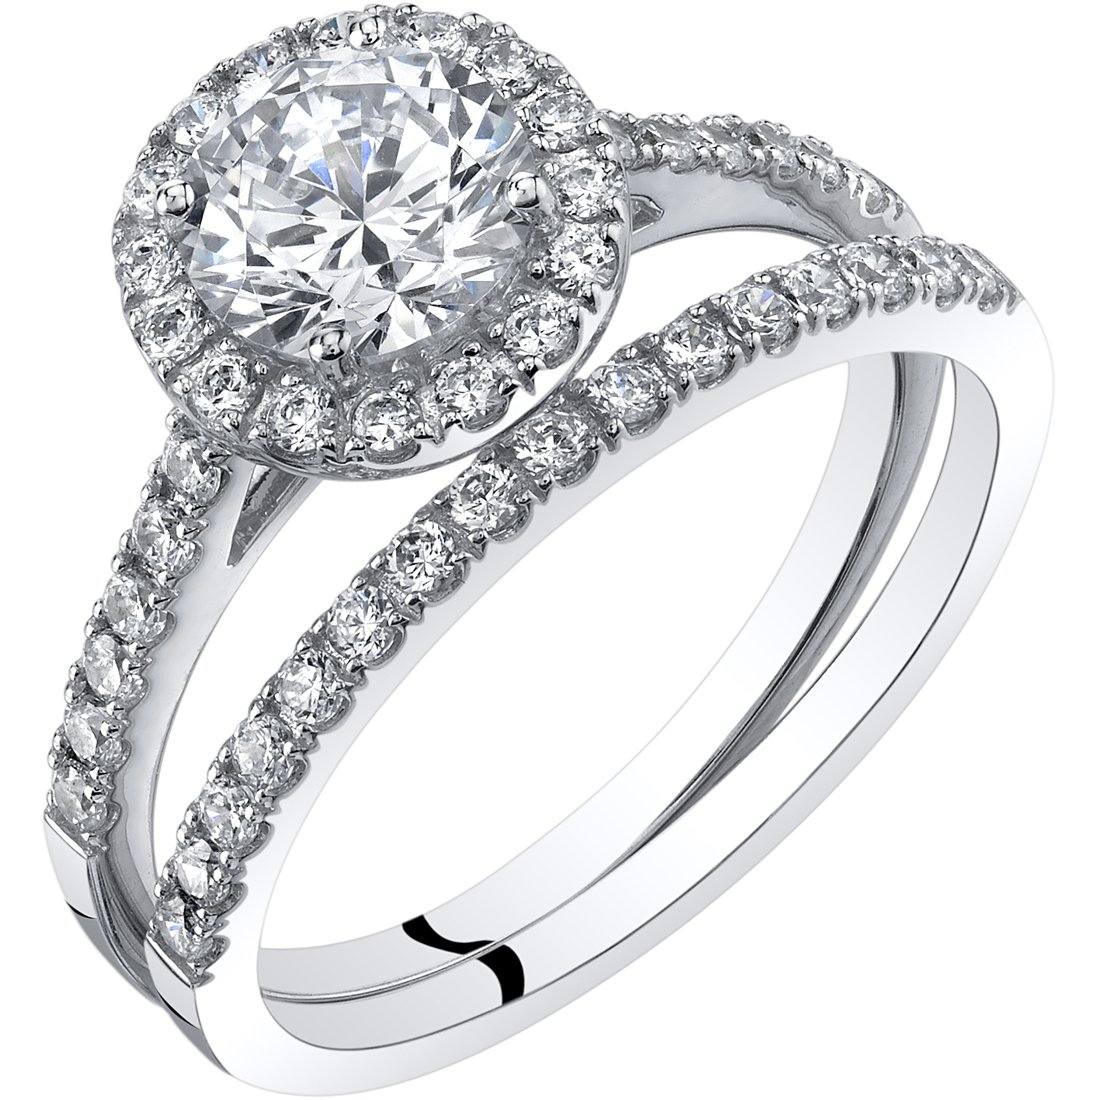 14K White Gold Halo Engagament Ring and Wedding Band Bridal Set Size 6.5 by Peora